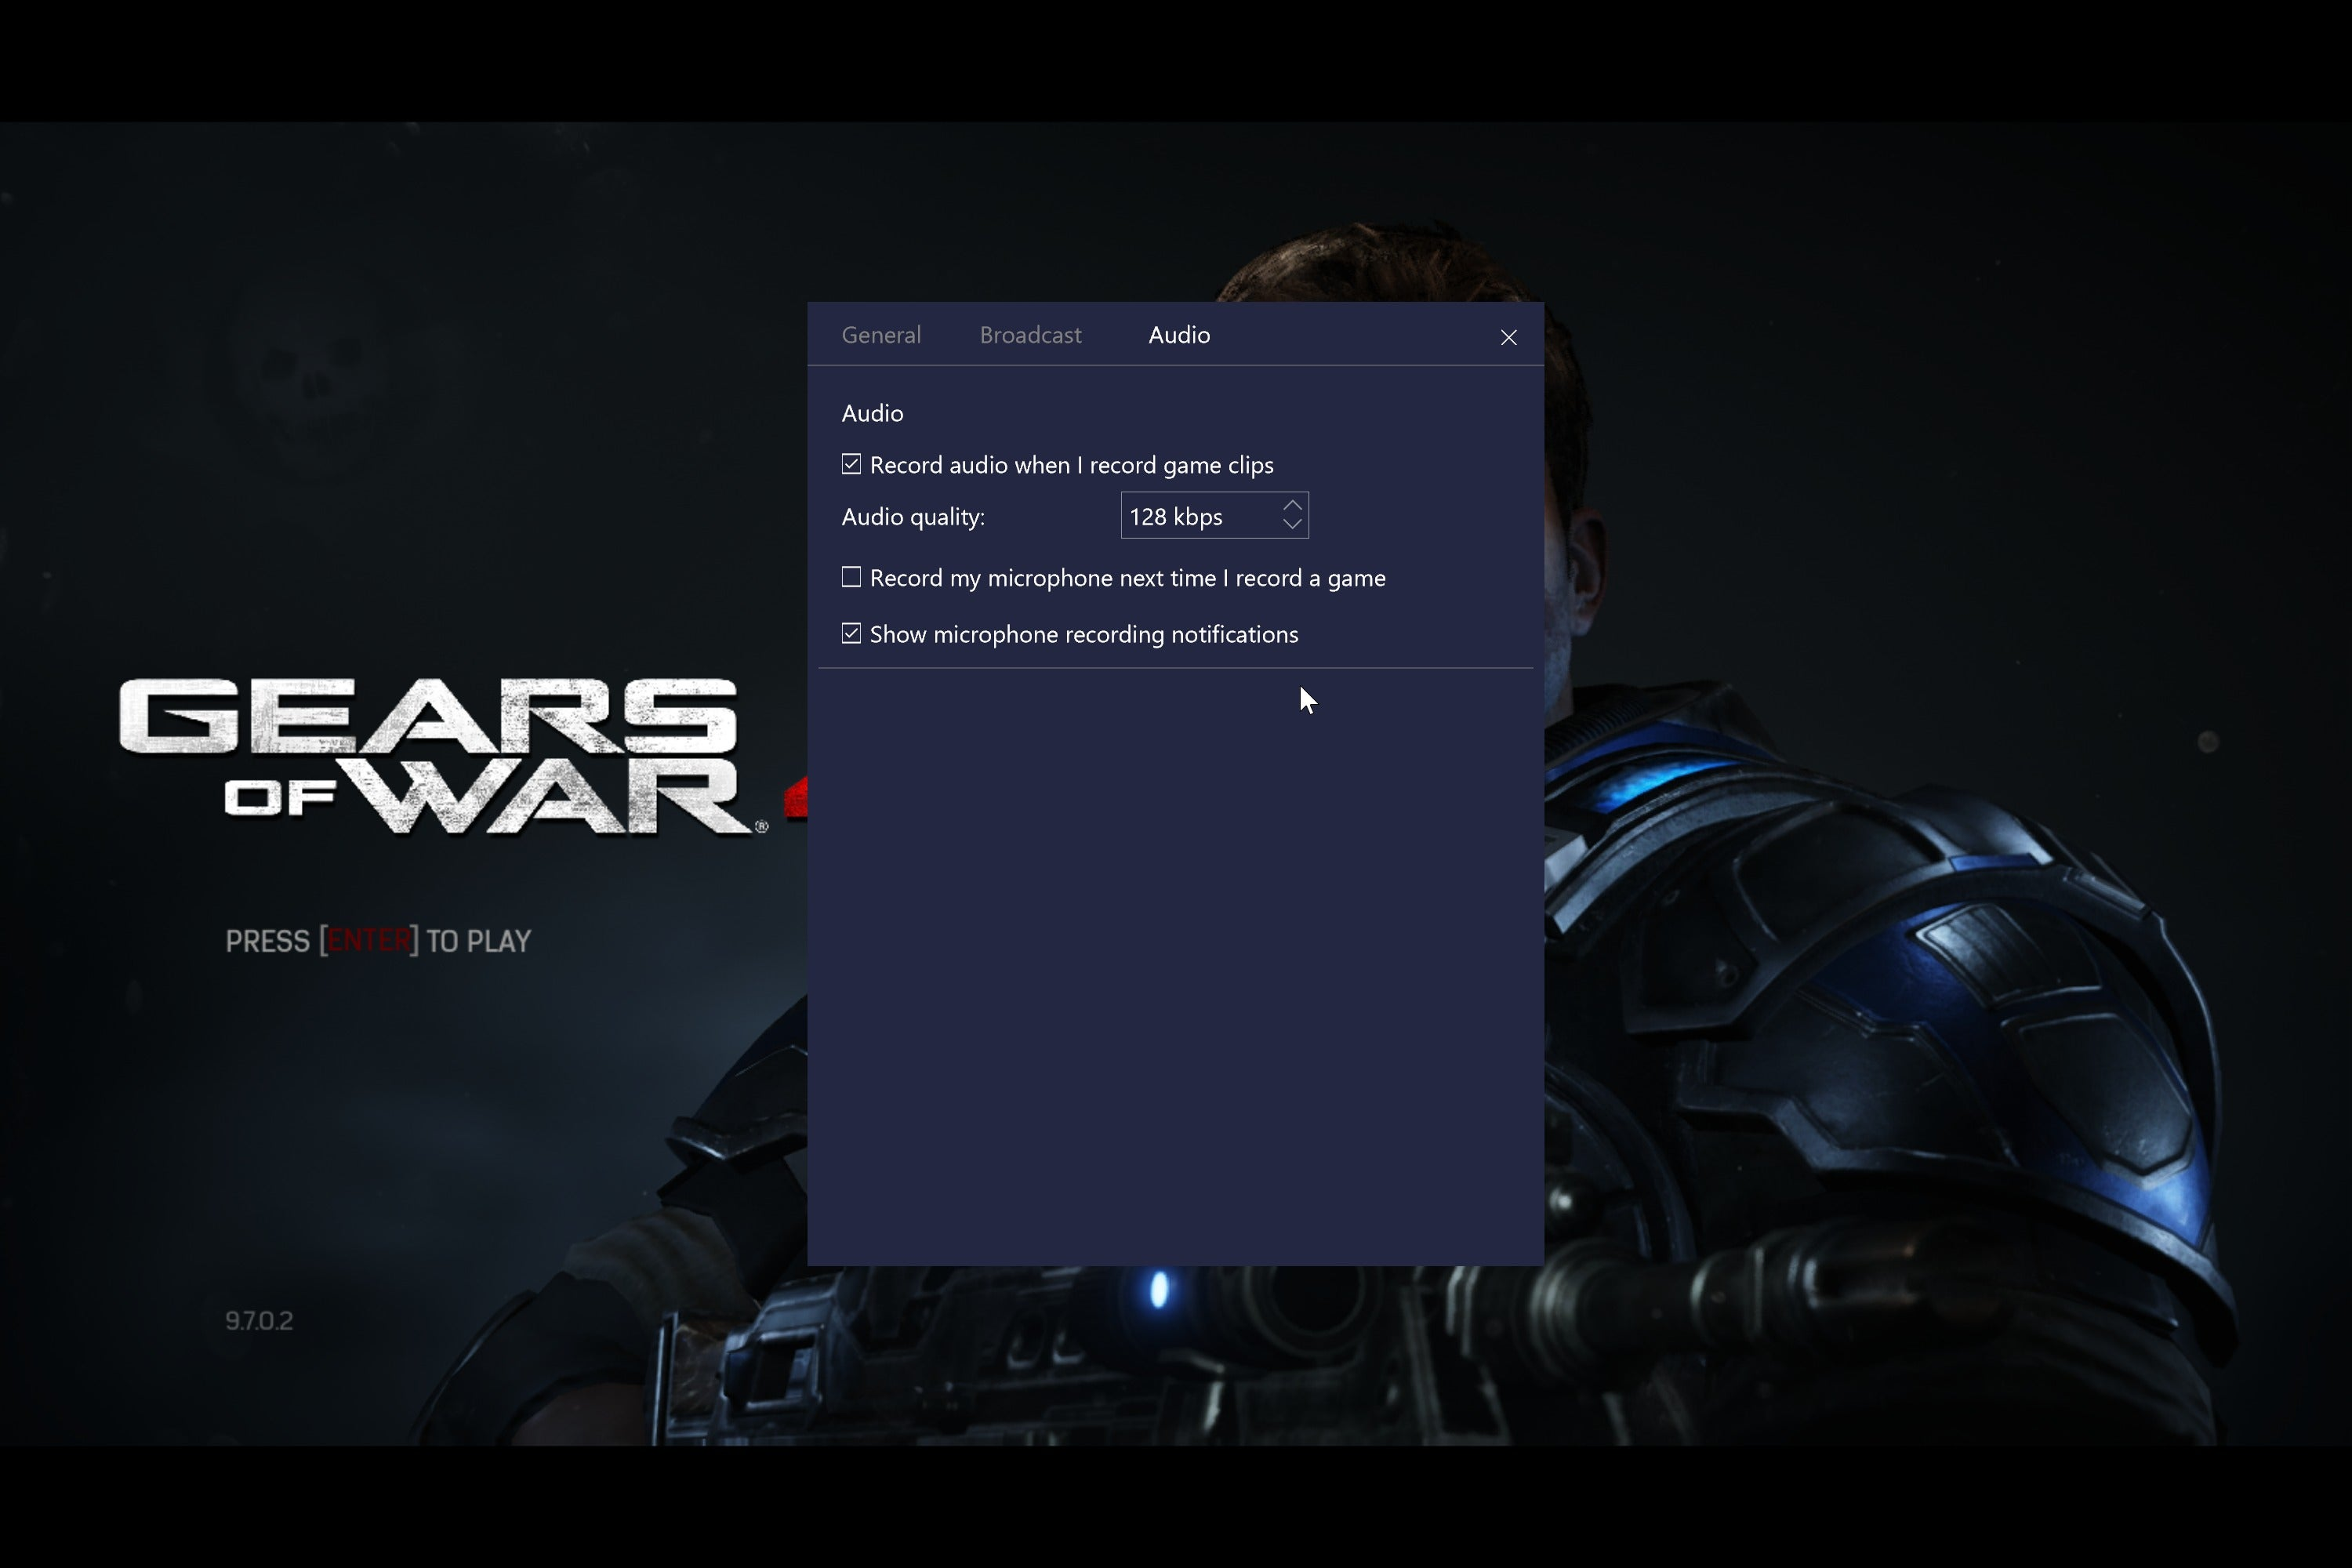 Show me how to play a dvd in windows 10 - Beam Broadcast Windows 10 5